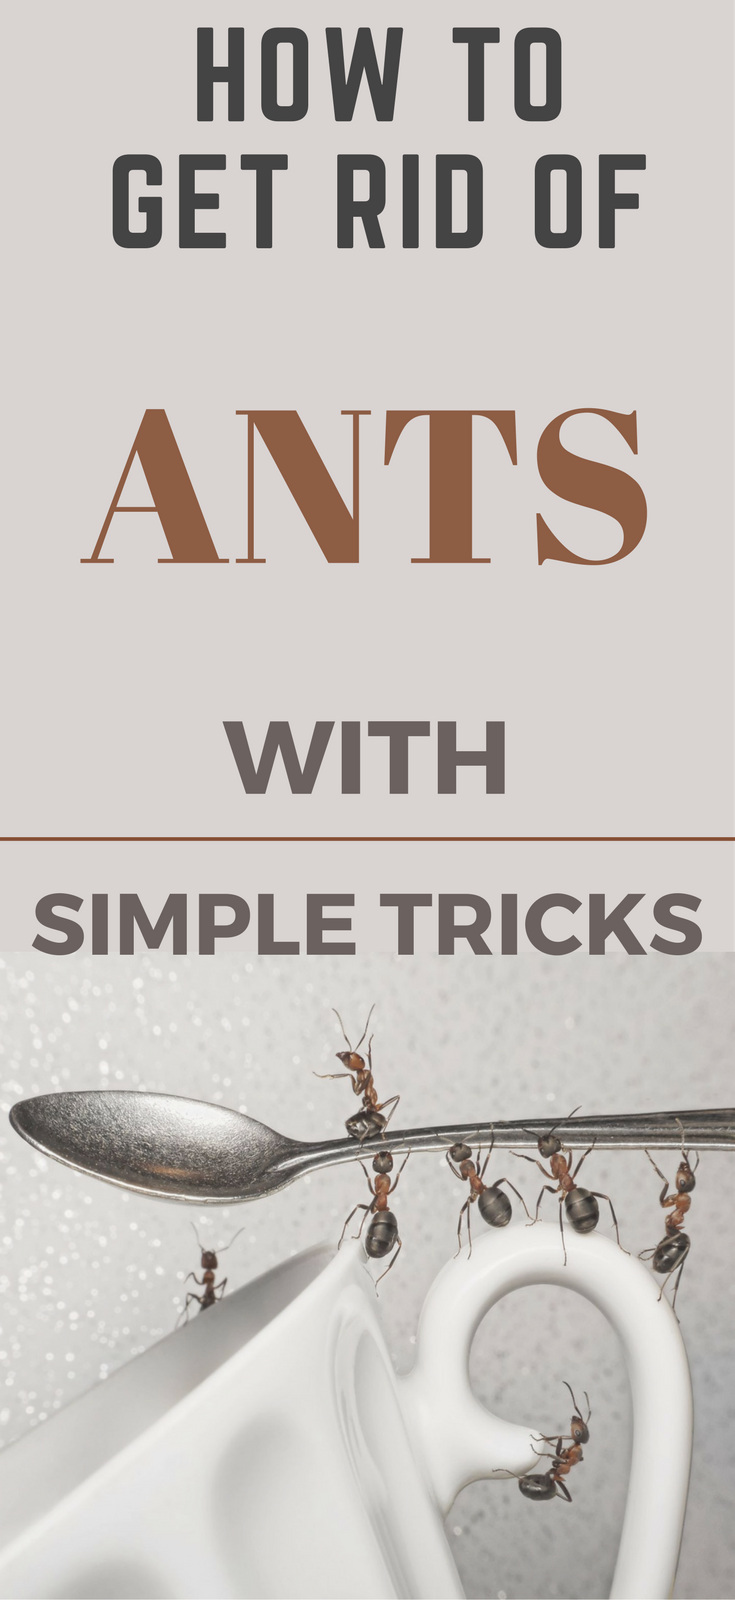 How To Get Rid Of Ants In The Kitchen With Simple Tricks Topcleaningtips Com